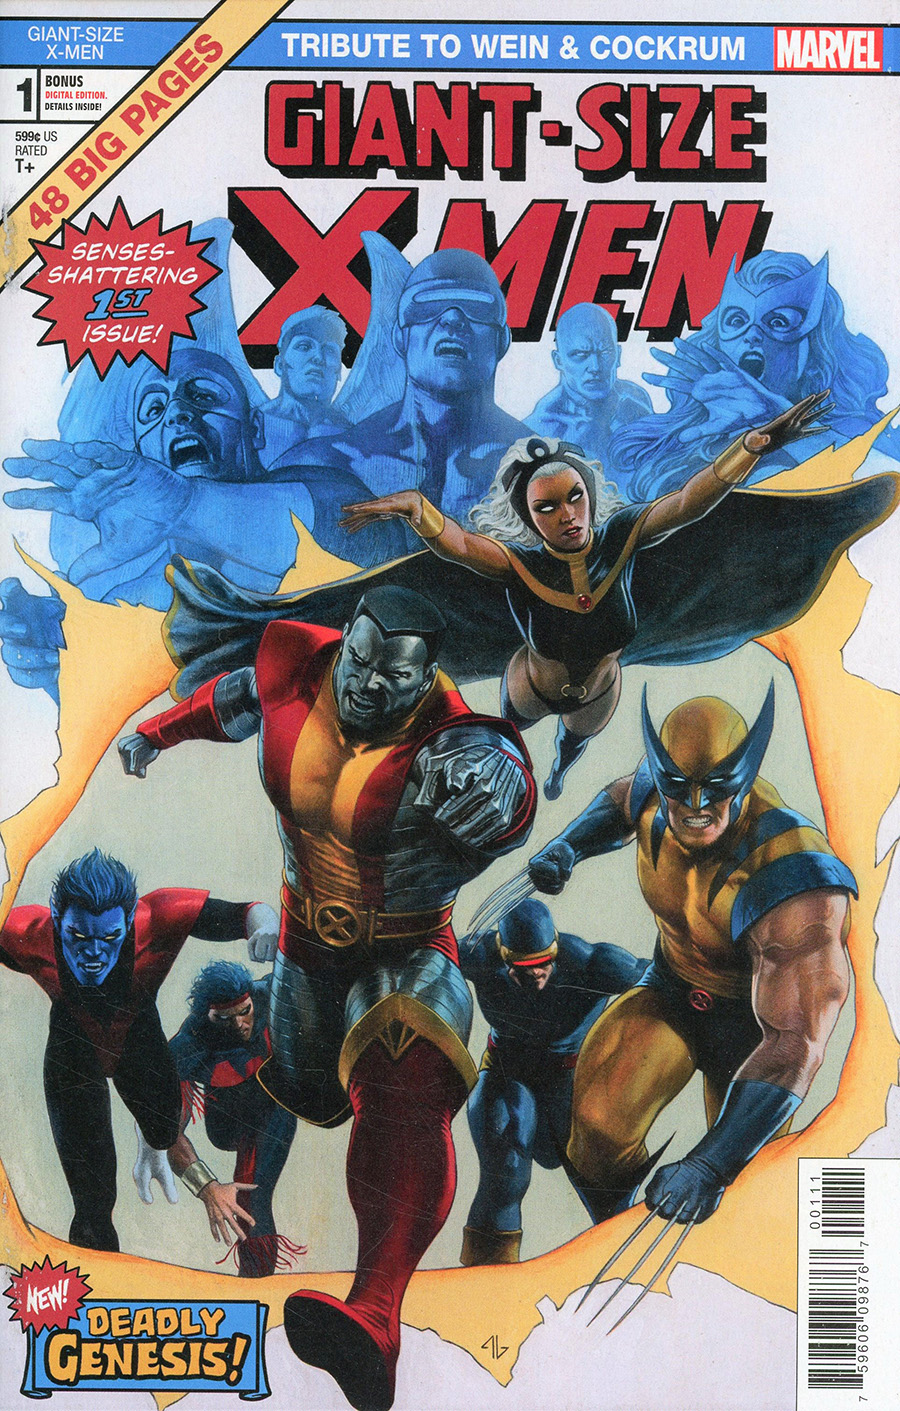 Giant-Size X-Men Tribute To Len Wein & Dave Cockrum One Shot Cover A Regular Adi Granov Cover